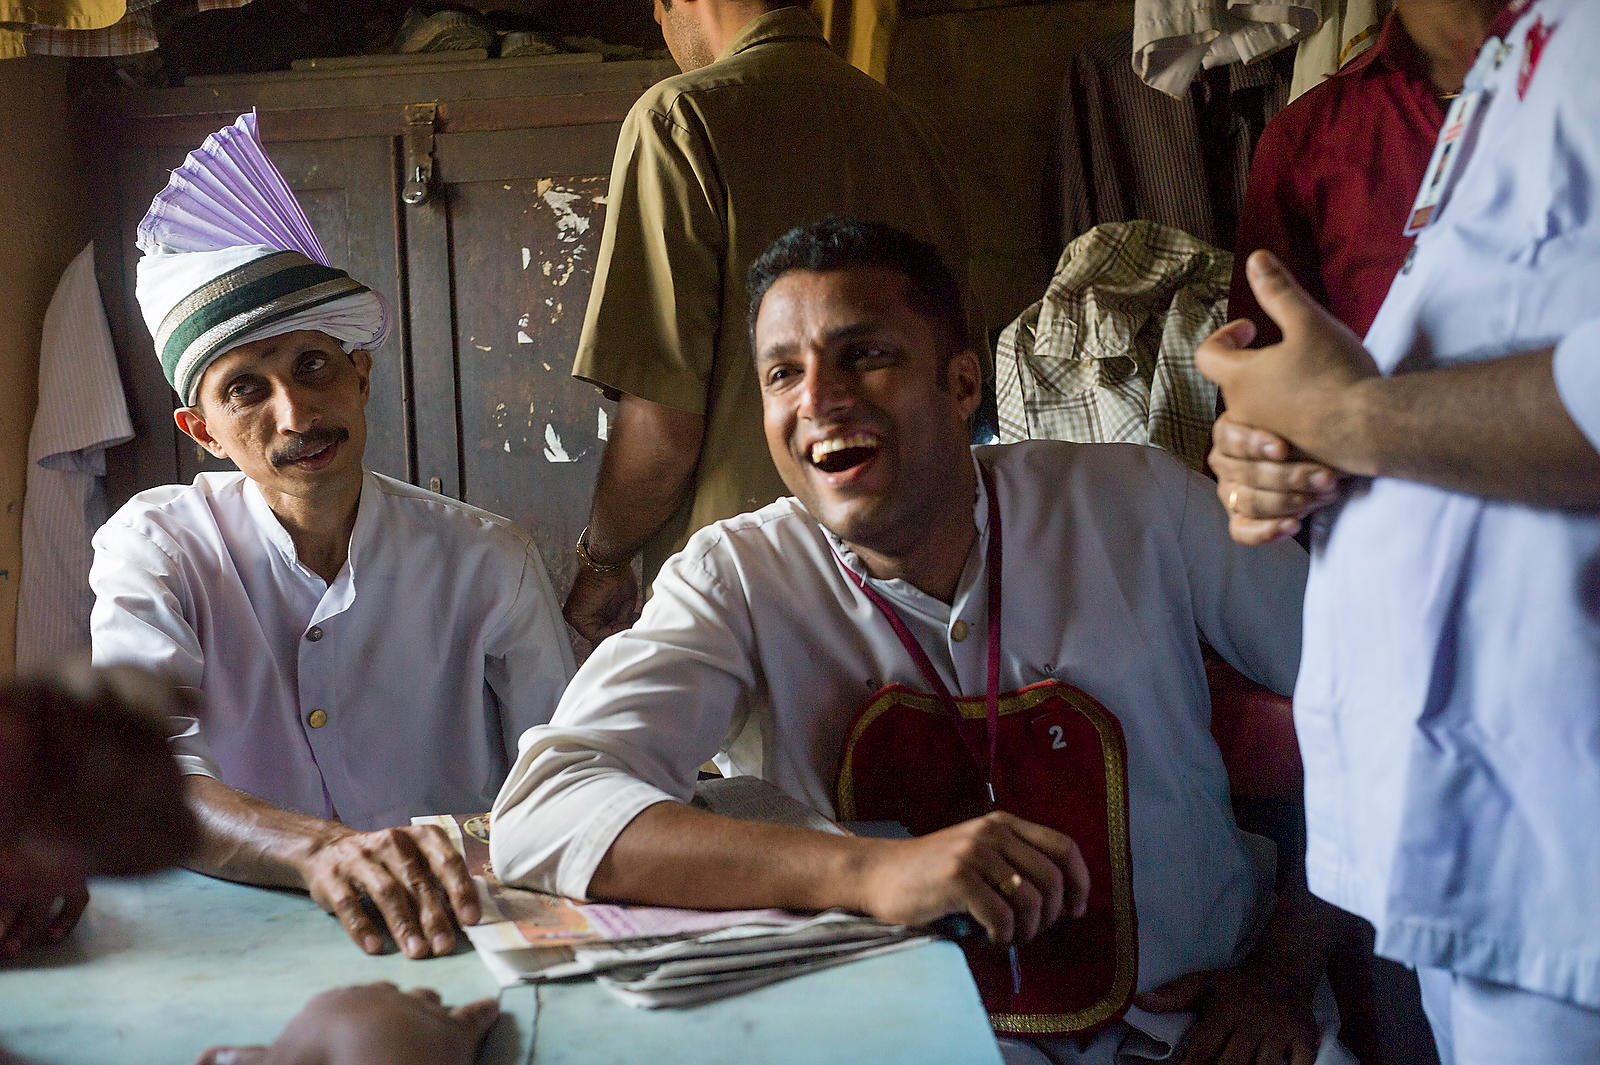 Waiters laugh and joke during a break in the staffroom of the Indian Coffee House, Kottayam